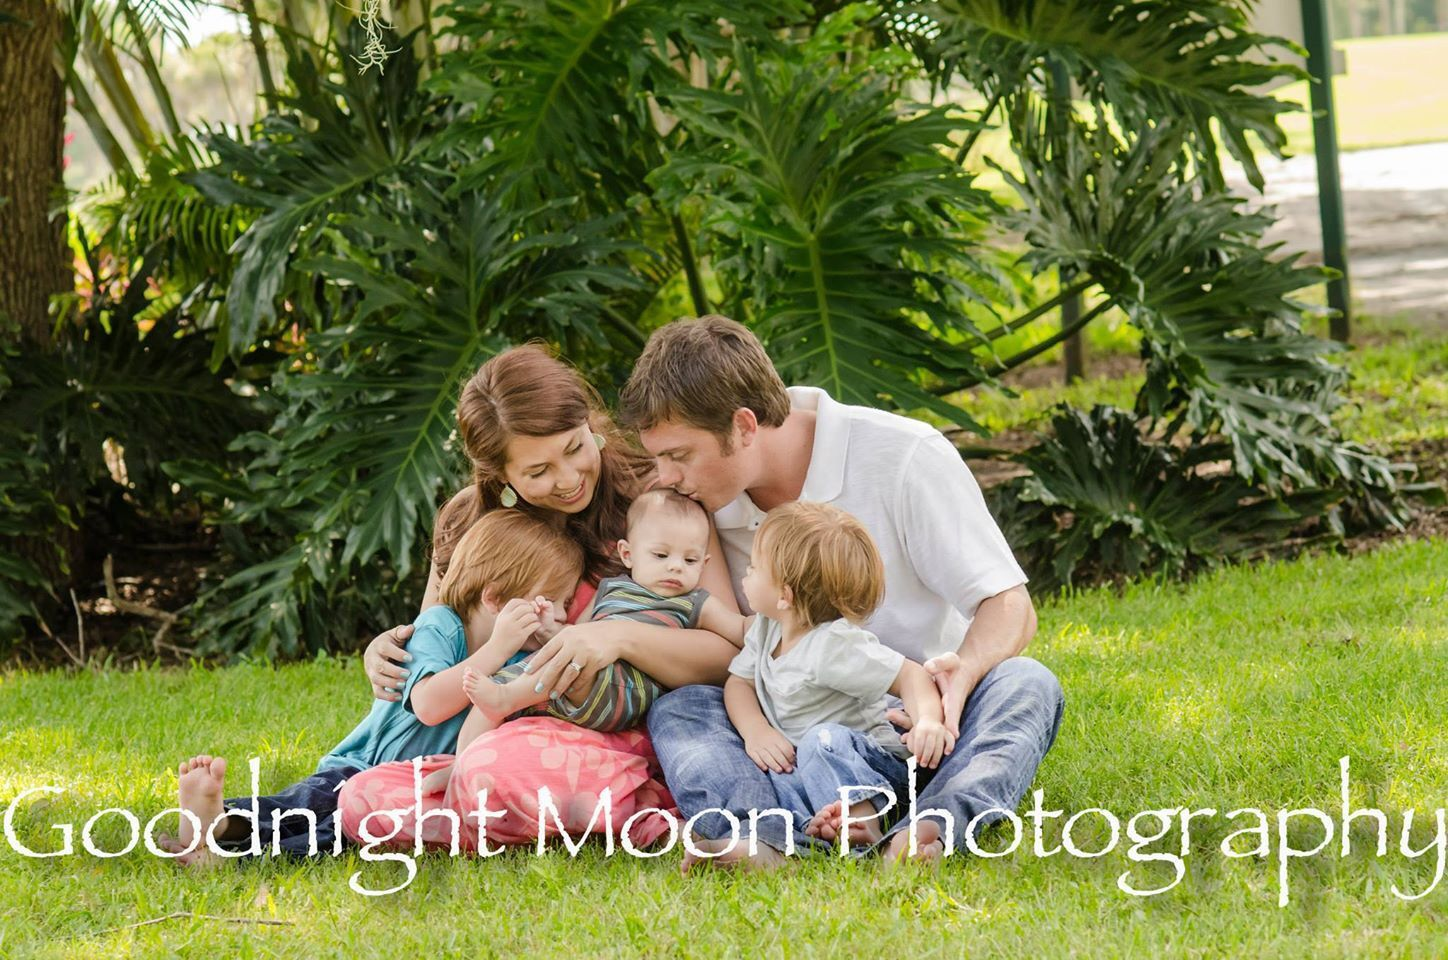 Beautiful, natural, family of five photo shoot! Love the interaction ...